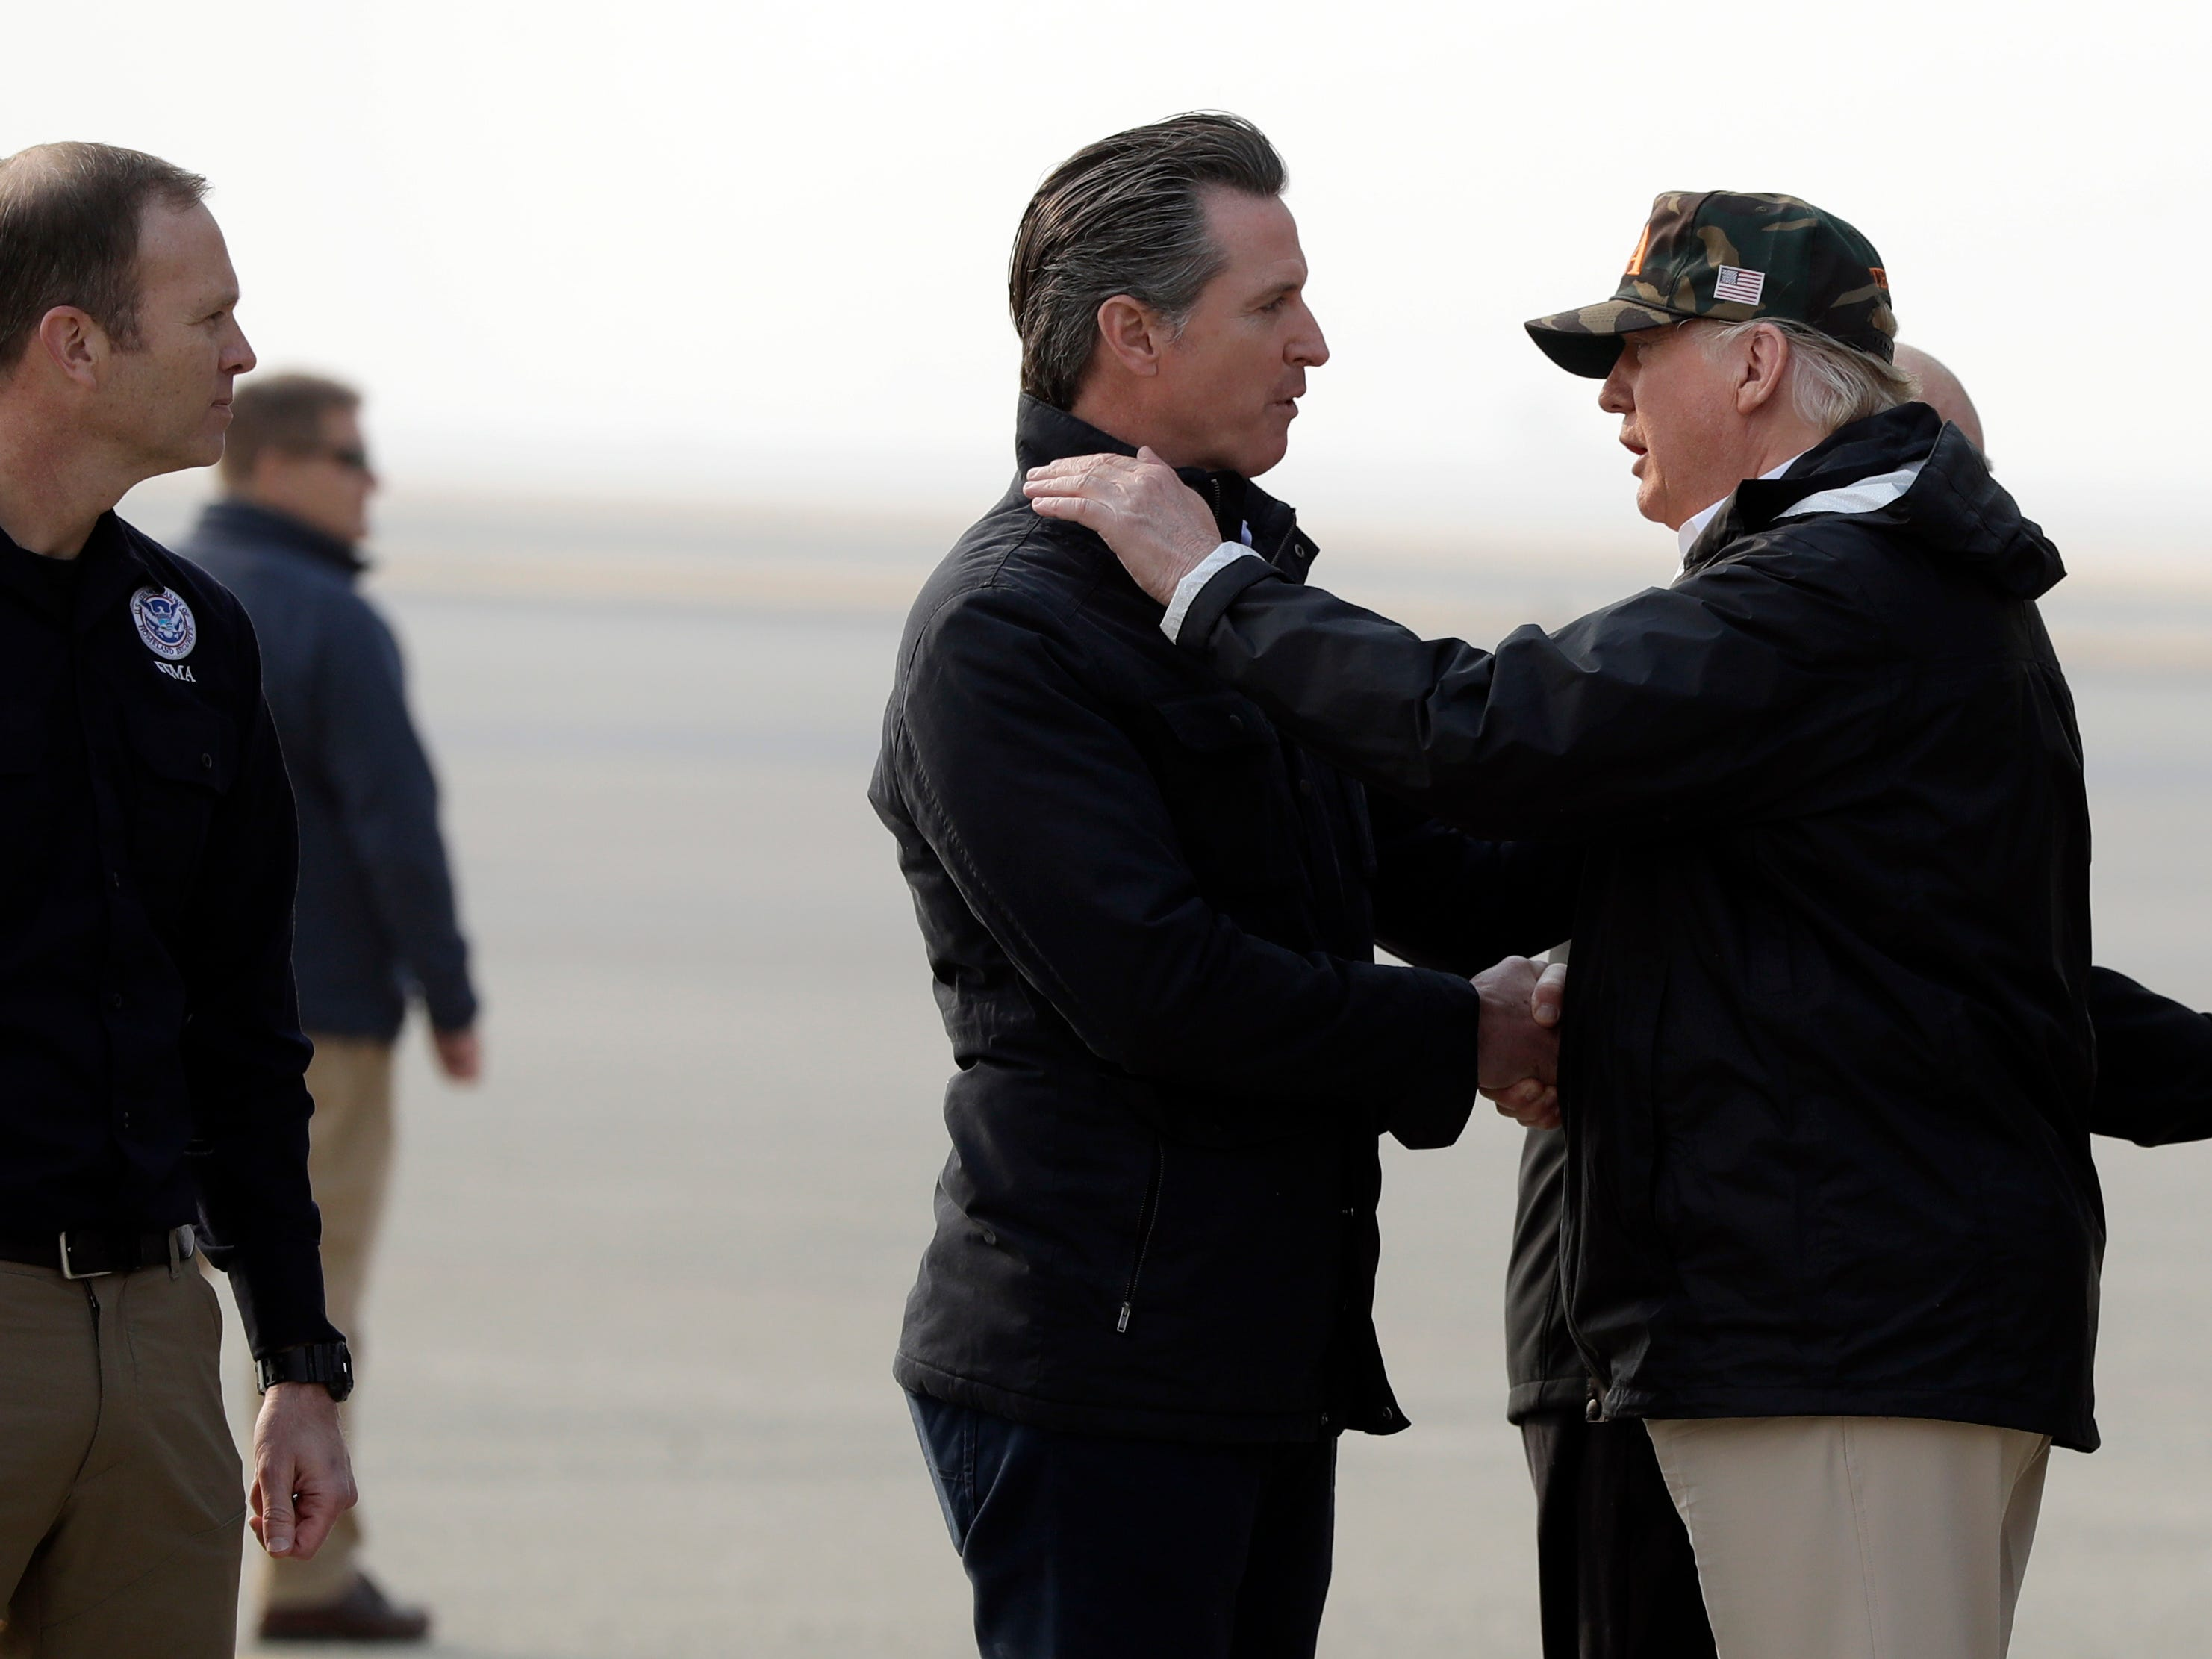 President Donald Trump greets California Gov.-elect Gavin Newsom as he arrives on Air Force One at Beale Air Force Base for a visit to areas impacted by the wildfires, Saturday, Nov. 17, 2018, at Beale Air Force Base, Calif. At left is Federal Emergency Management Agency administrator Brock Long (AP Photo/Evan Vucci) (AP Photo/Evan Vucci)